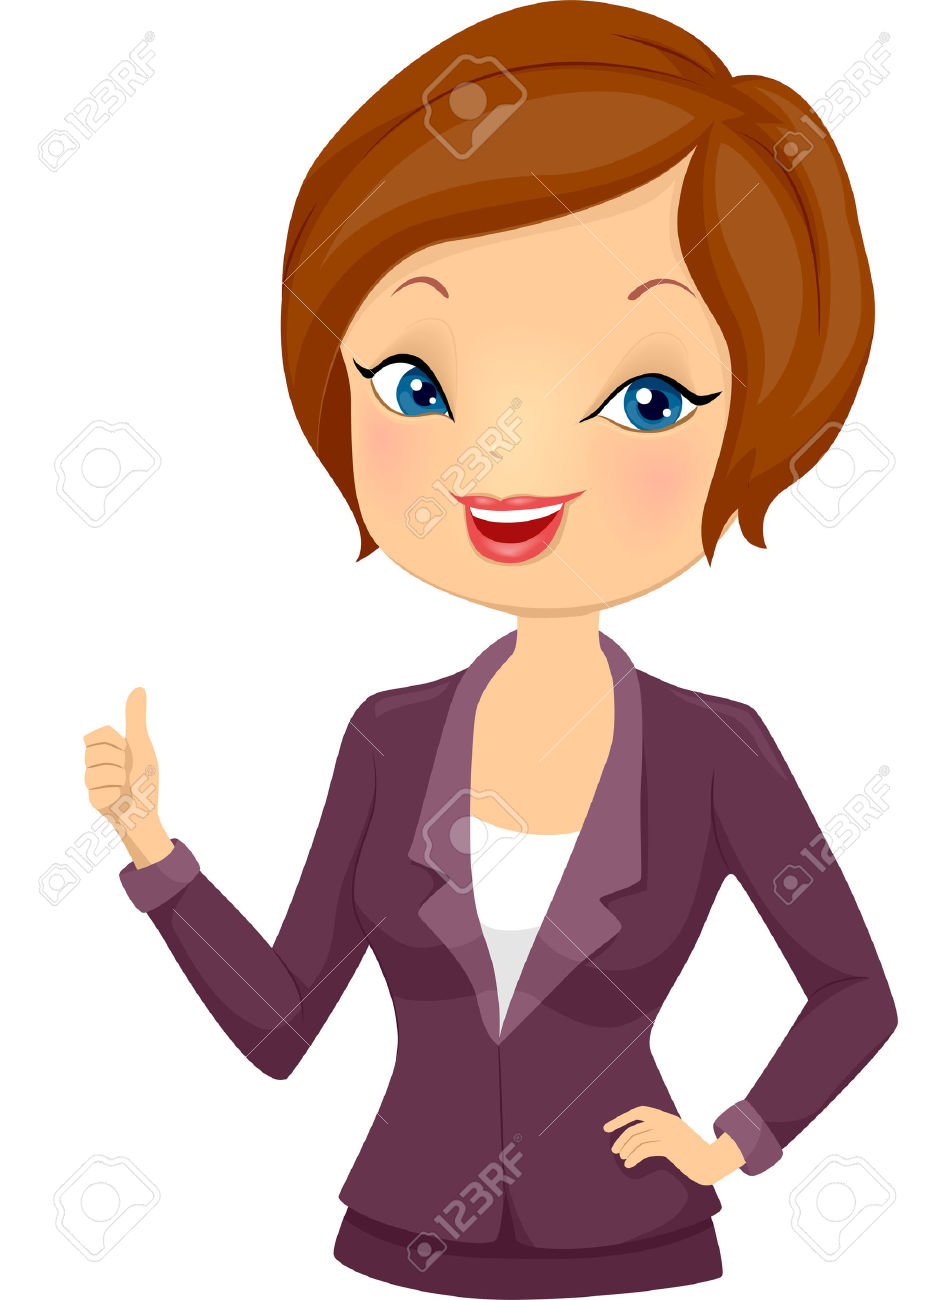 Girl Thumbs Up Clipart.